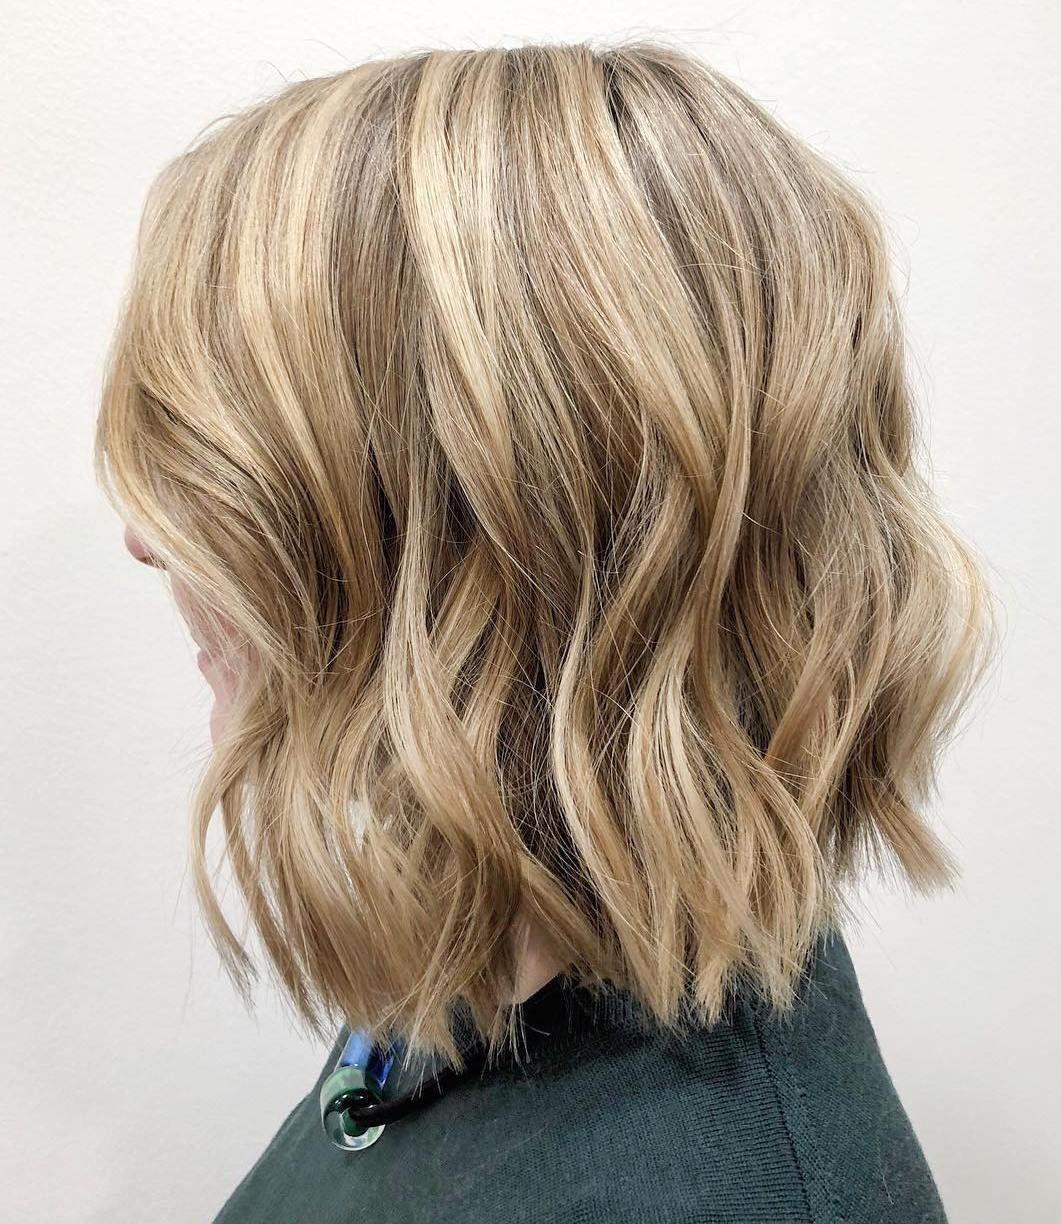 Square-Shaped Choppy Wavy Lob for Older